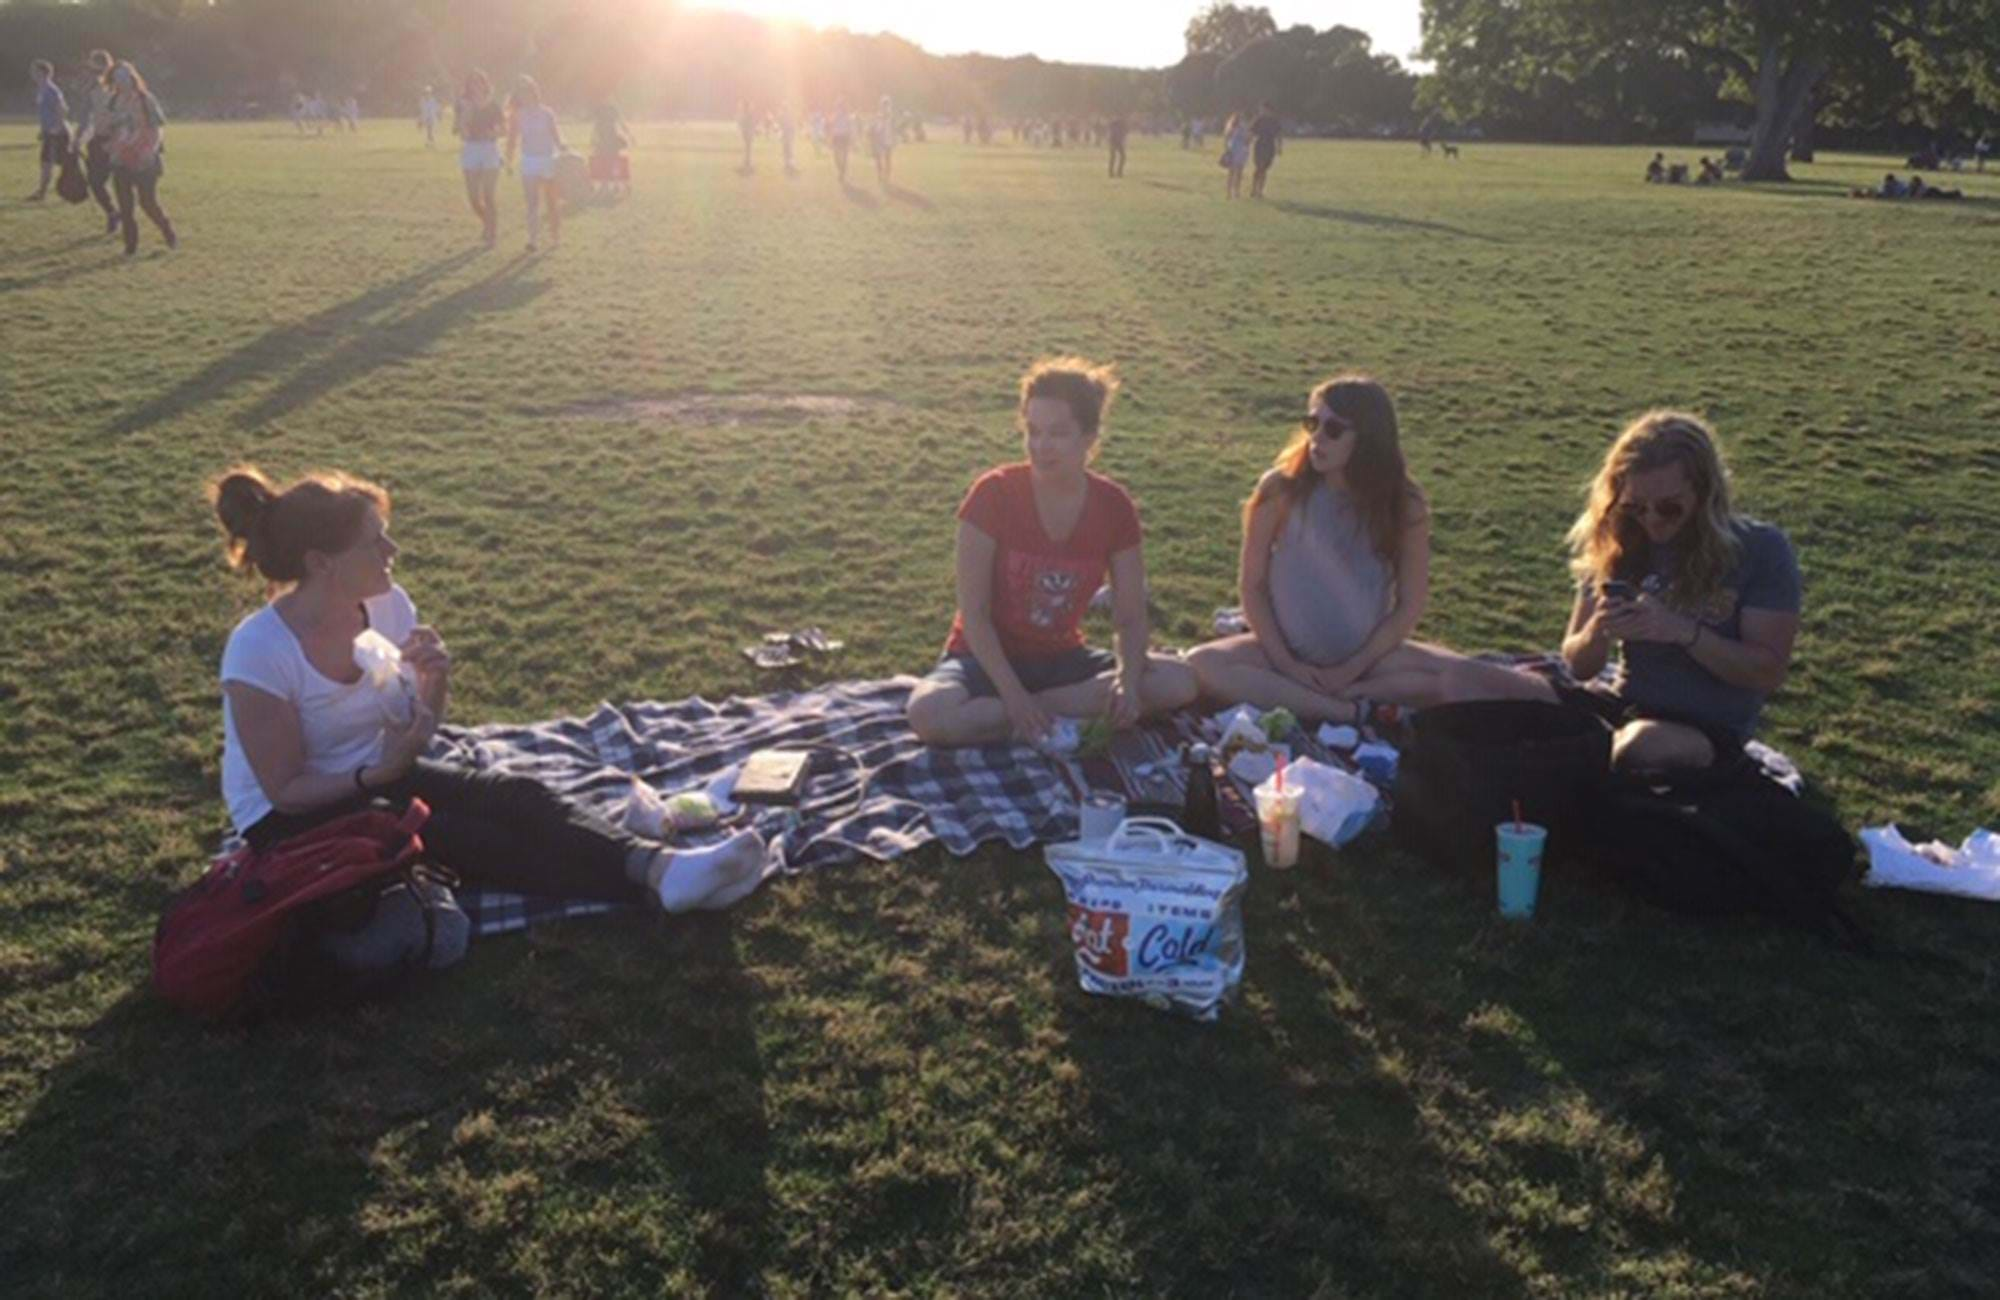 Elin and her internship friends in Austin in Texas doing a picnic